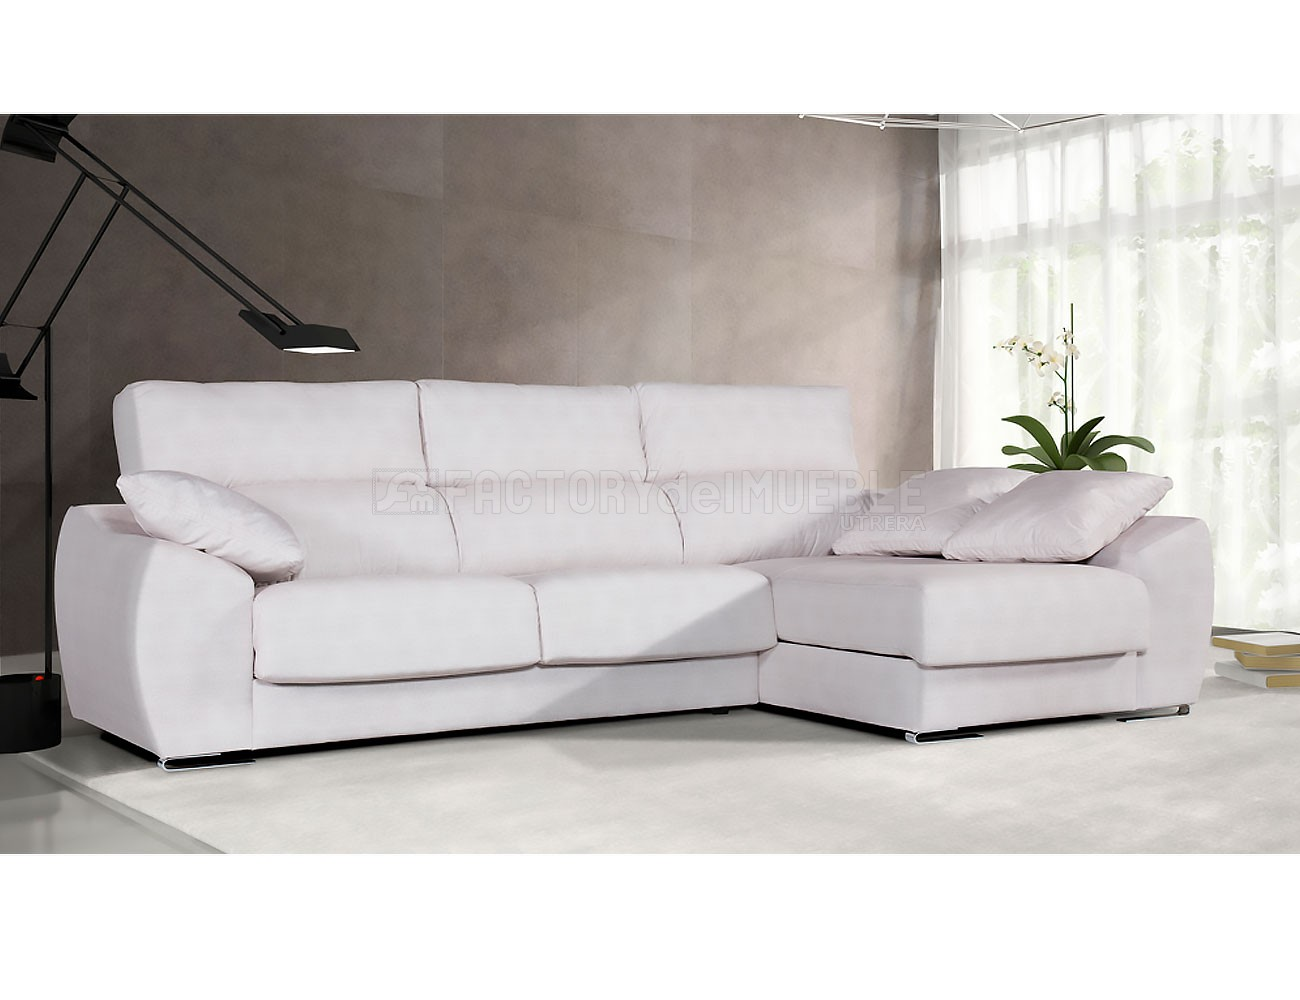 Sofa chaiselongue tosca